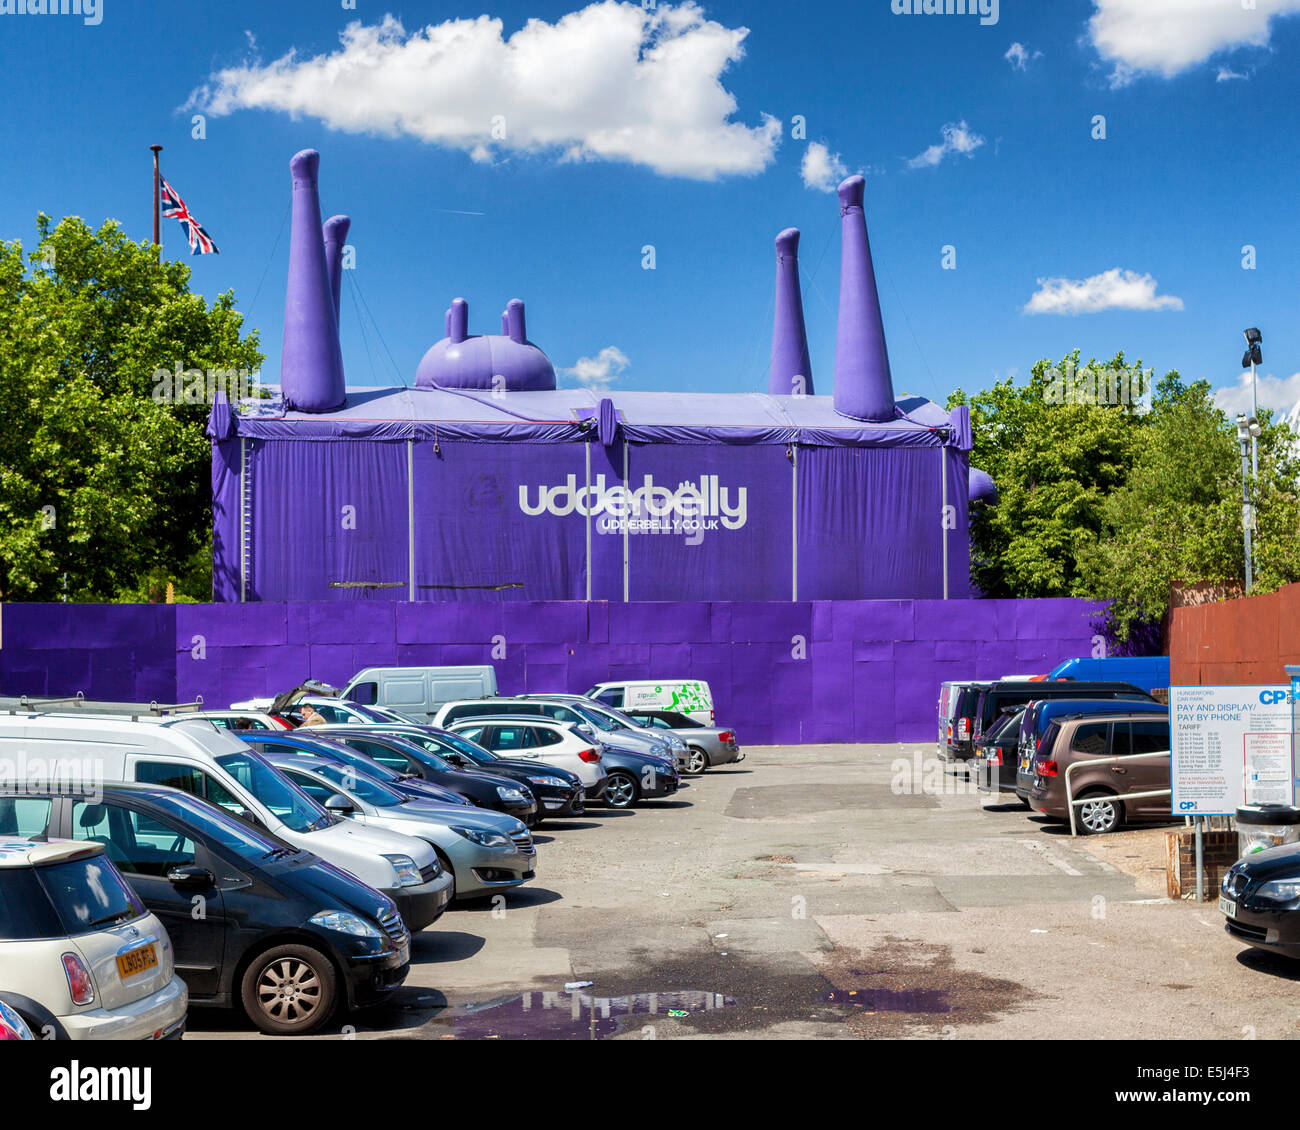 The Udderbelly tent - purple inverted cow with udders and legs in the air - entertainment venue on the South Bank, - Stock Image